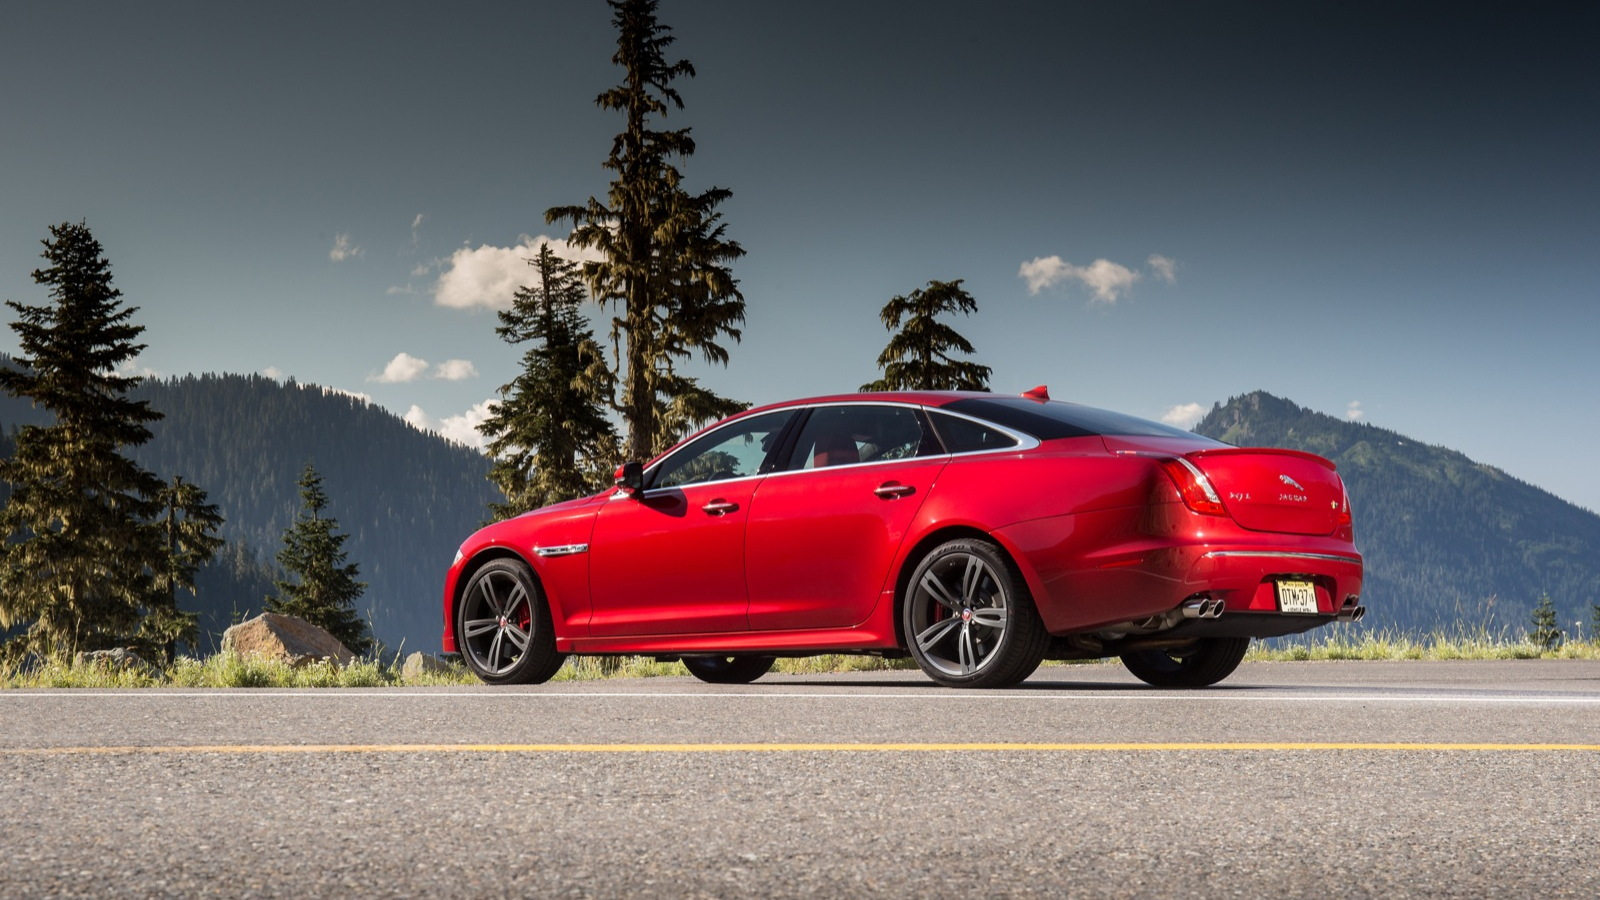 2014 Jaguar XJR  -  First Drive  -  August 2013